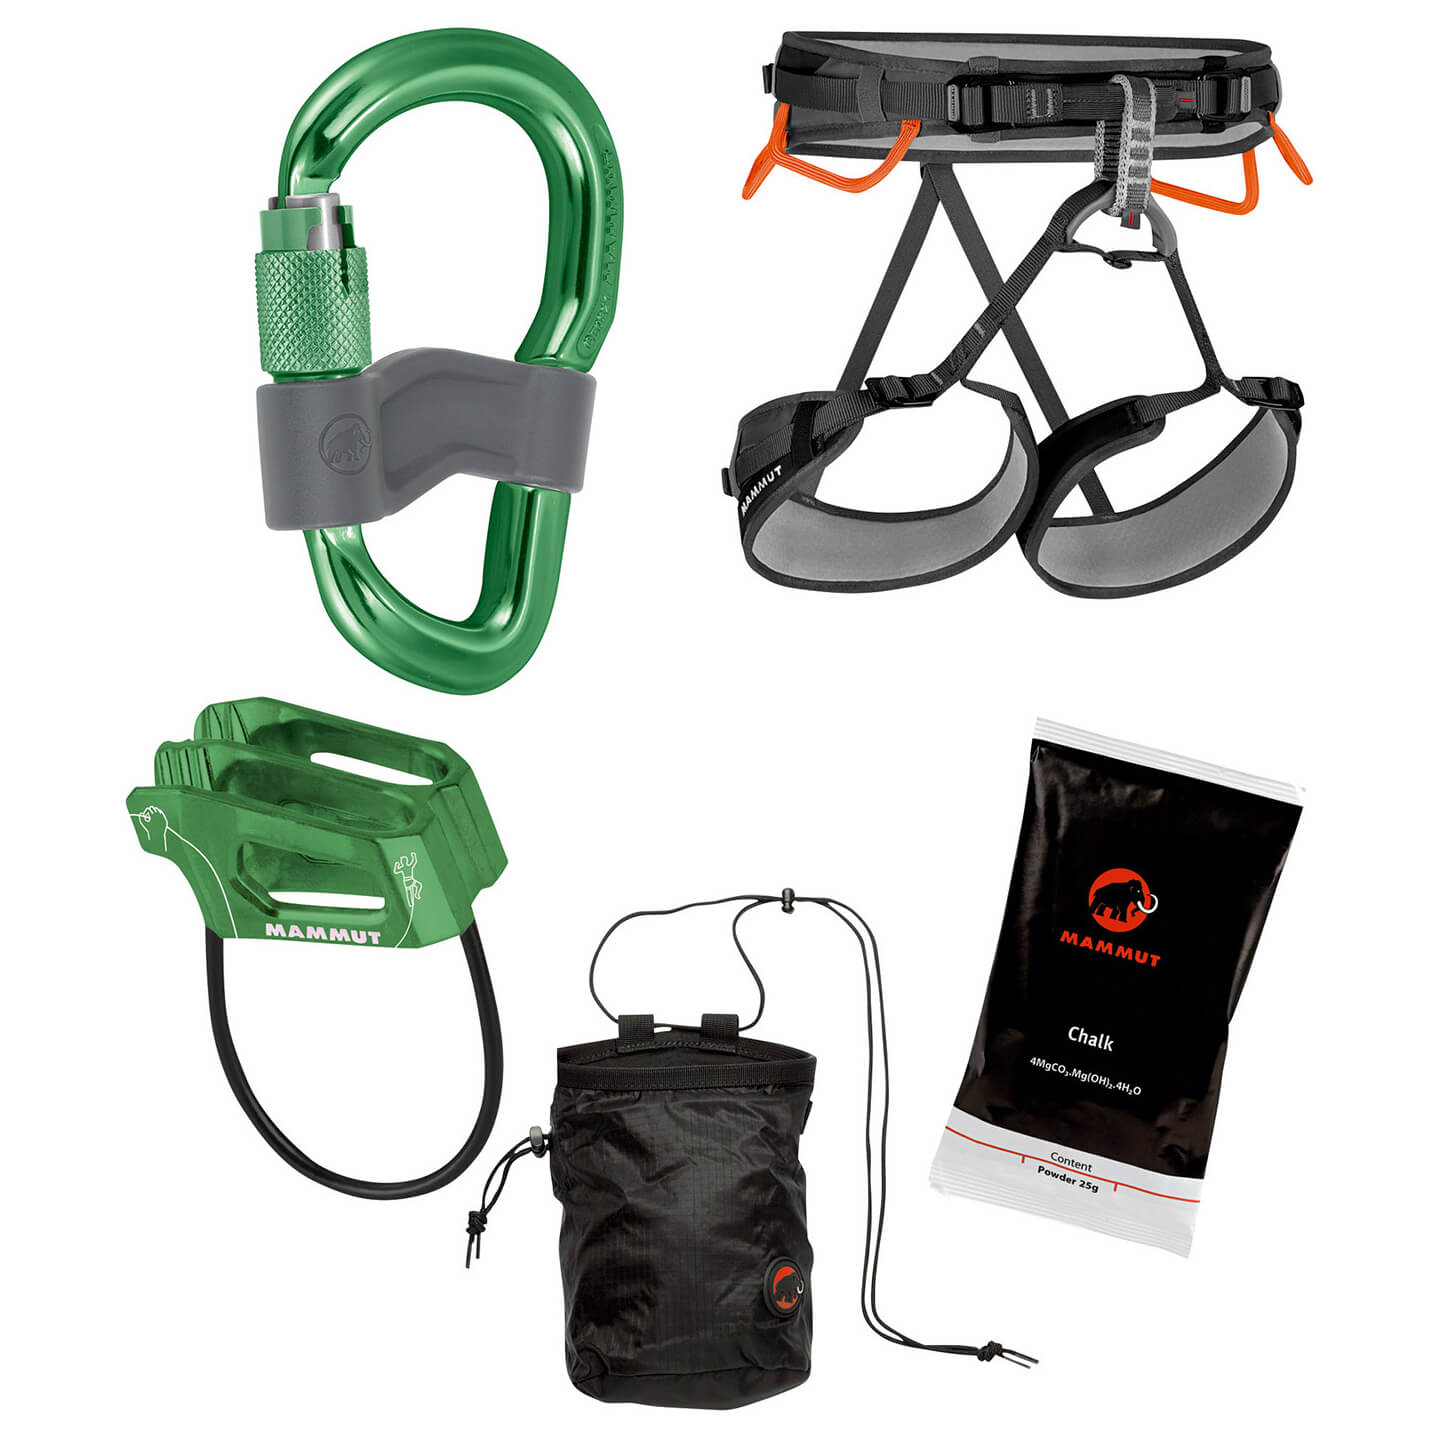 ophir guys Ophir 3 slide harness: a low profile, versatile harness for all-round rock climbing and alpine routes, the ophir 3 is designed for all-day comfort and breathability 2-part webbing in the waist.